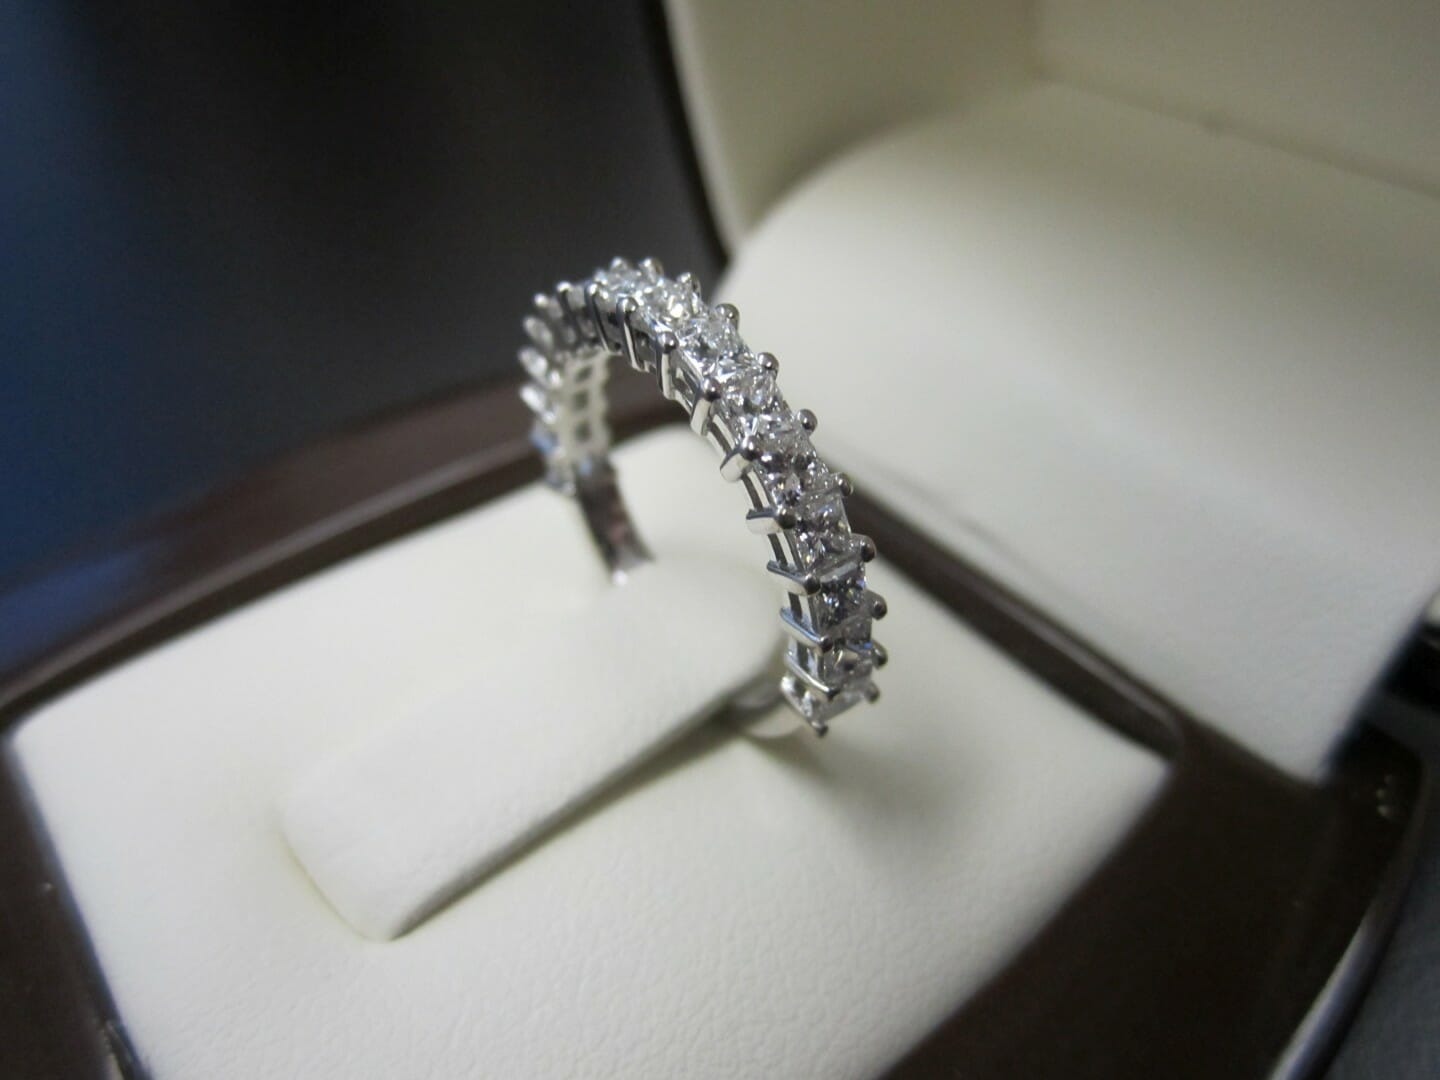 Picture of Custom Designed 19k White Gold Wedding Band with approx. 1.02ctw of Princess Cut Diamonds